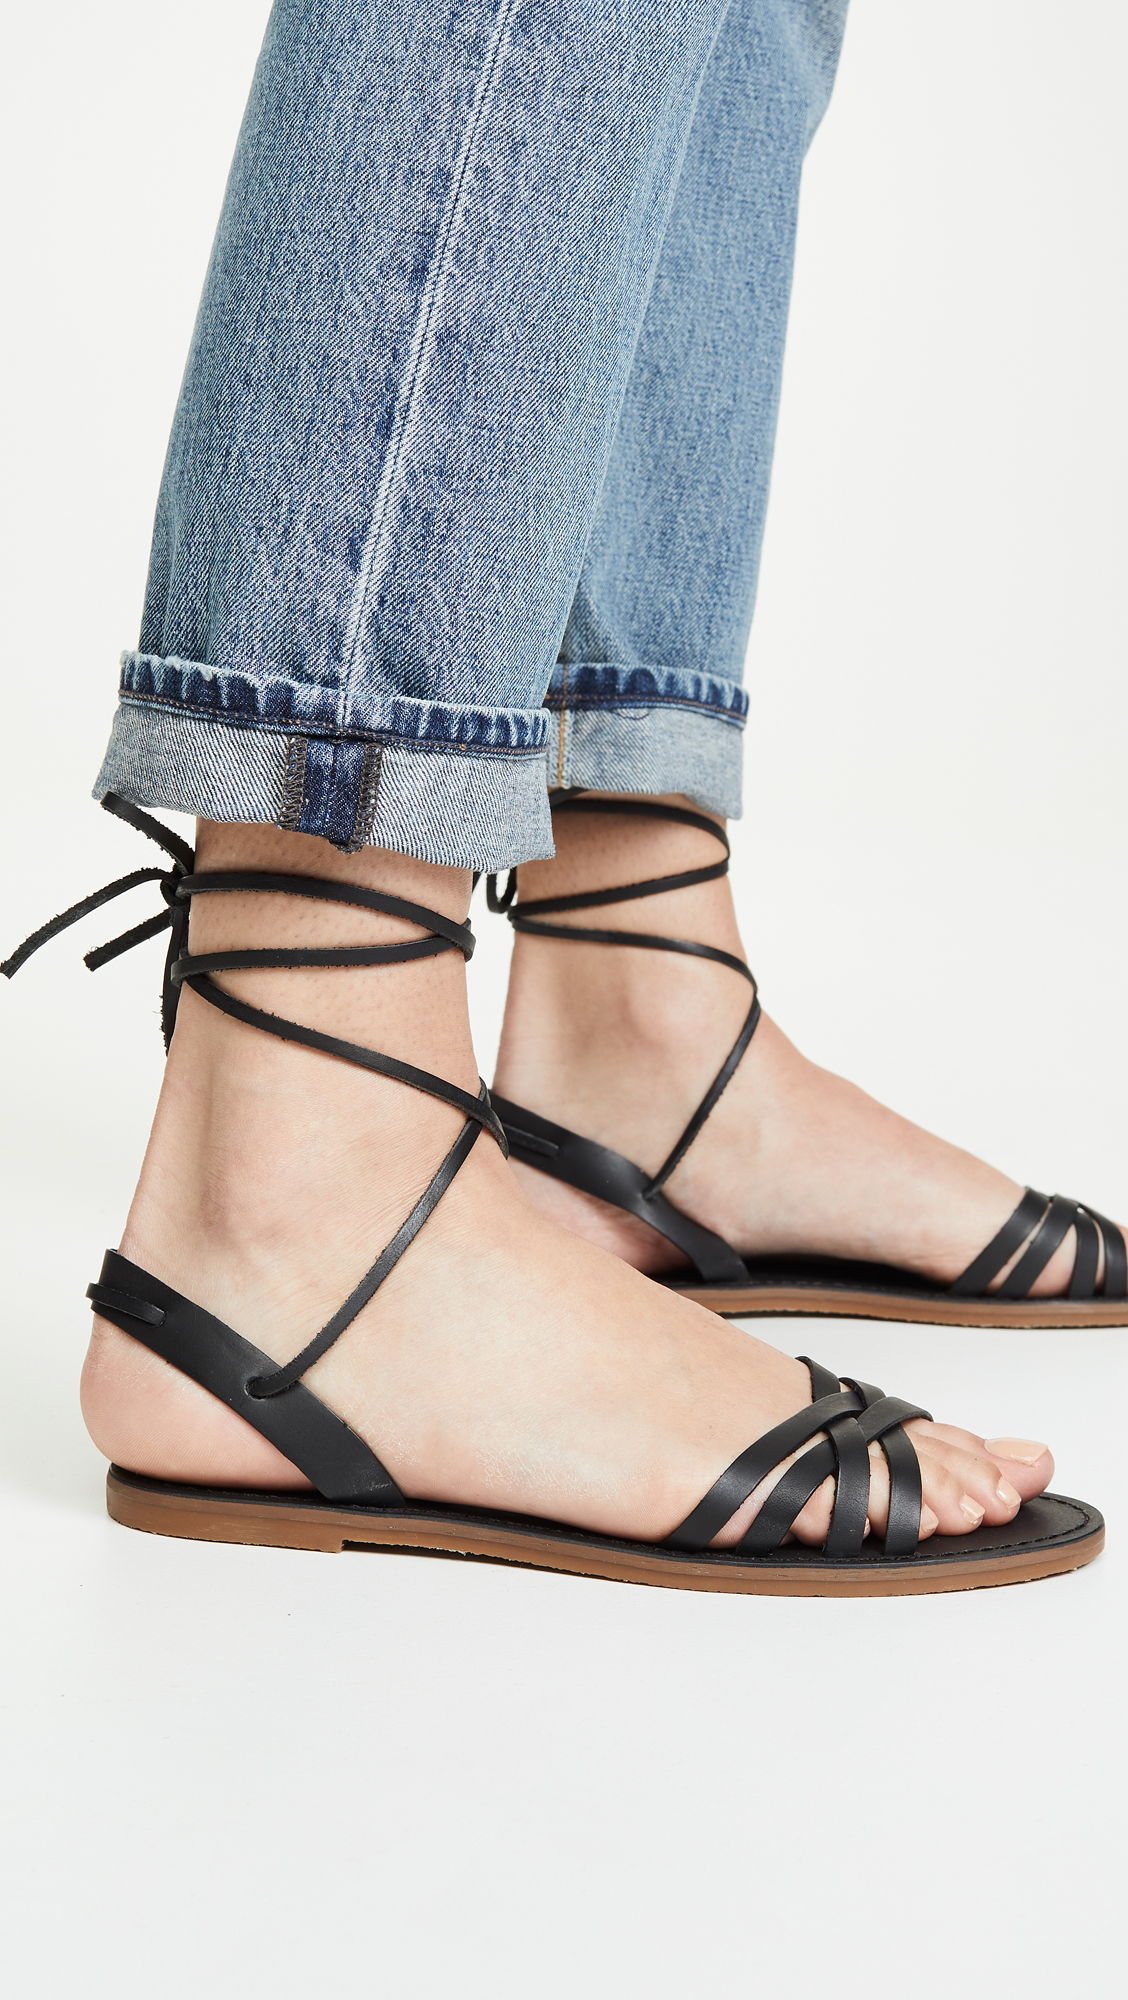 Woven Lace Up Sandals